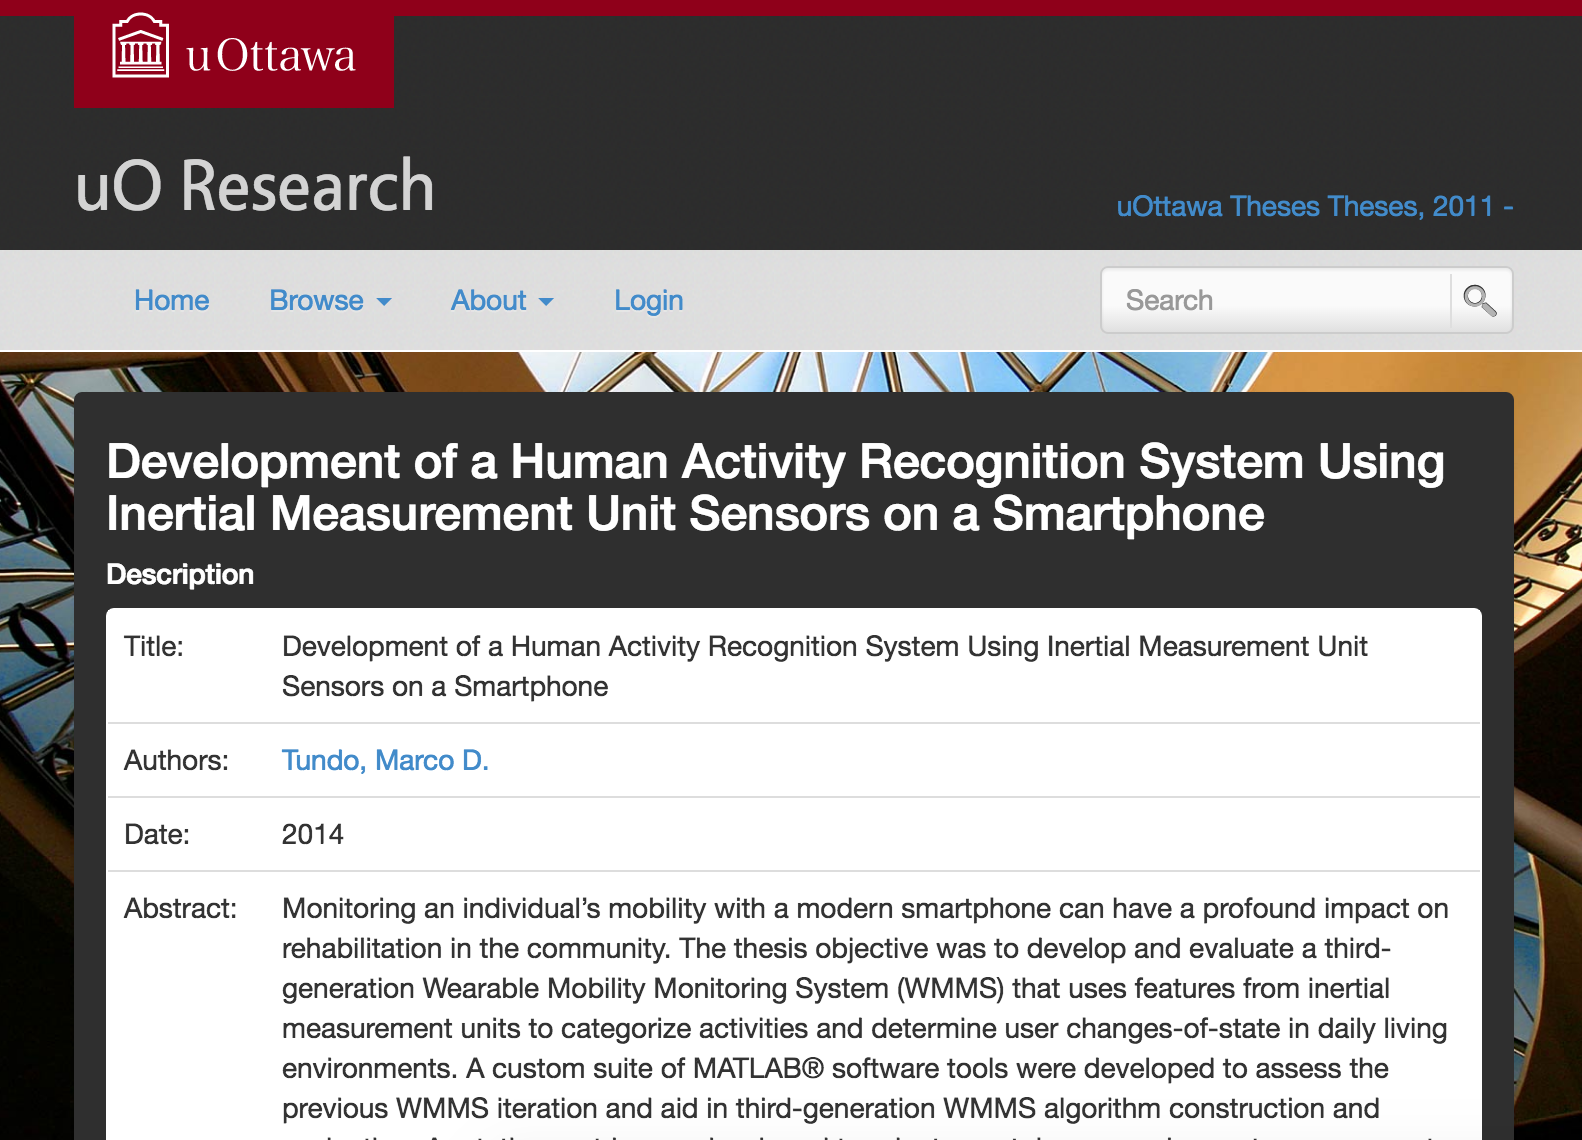 Development of a human activity recognition system using inertial measurement unit sensors on a smartphone